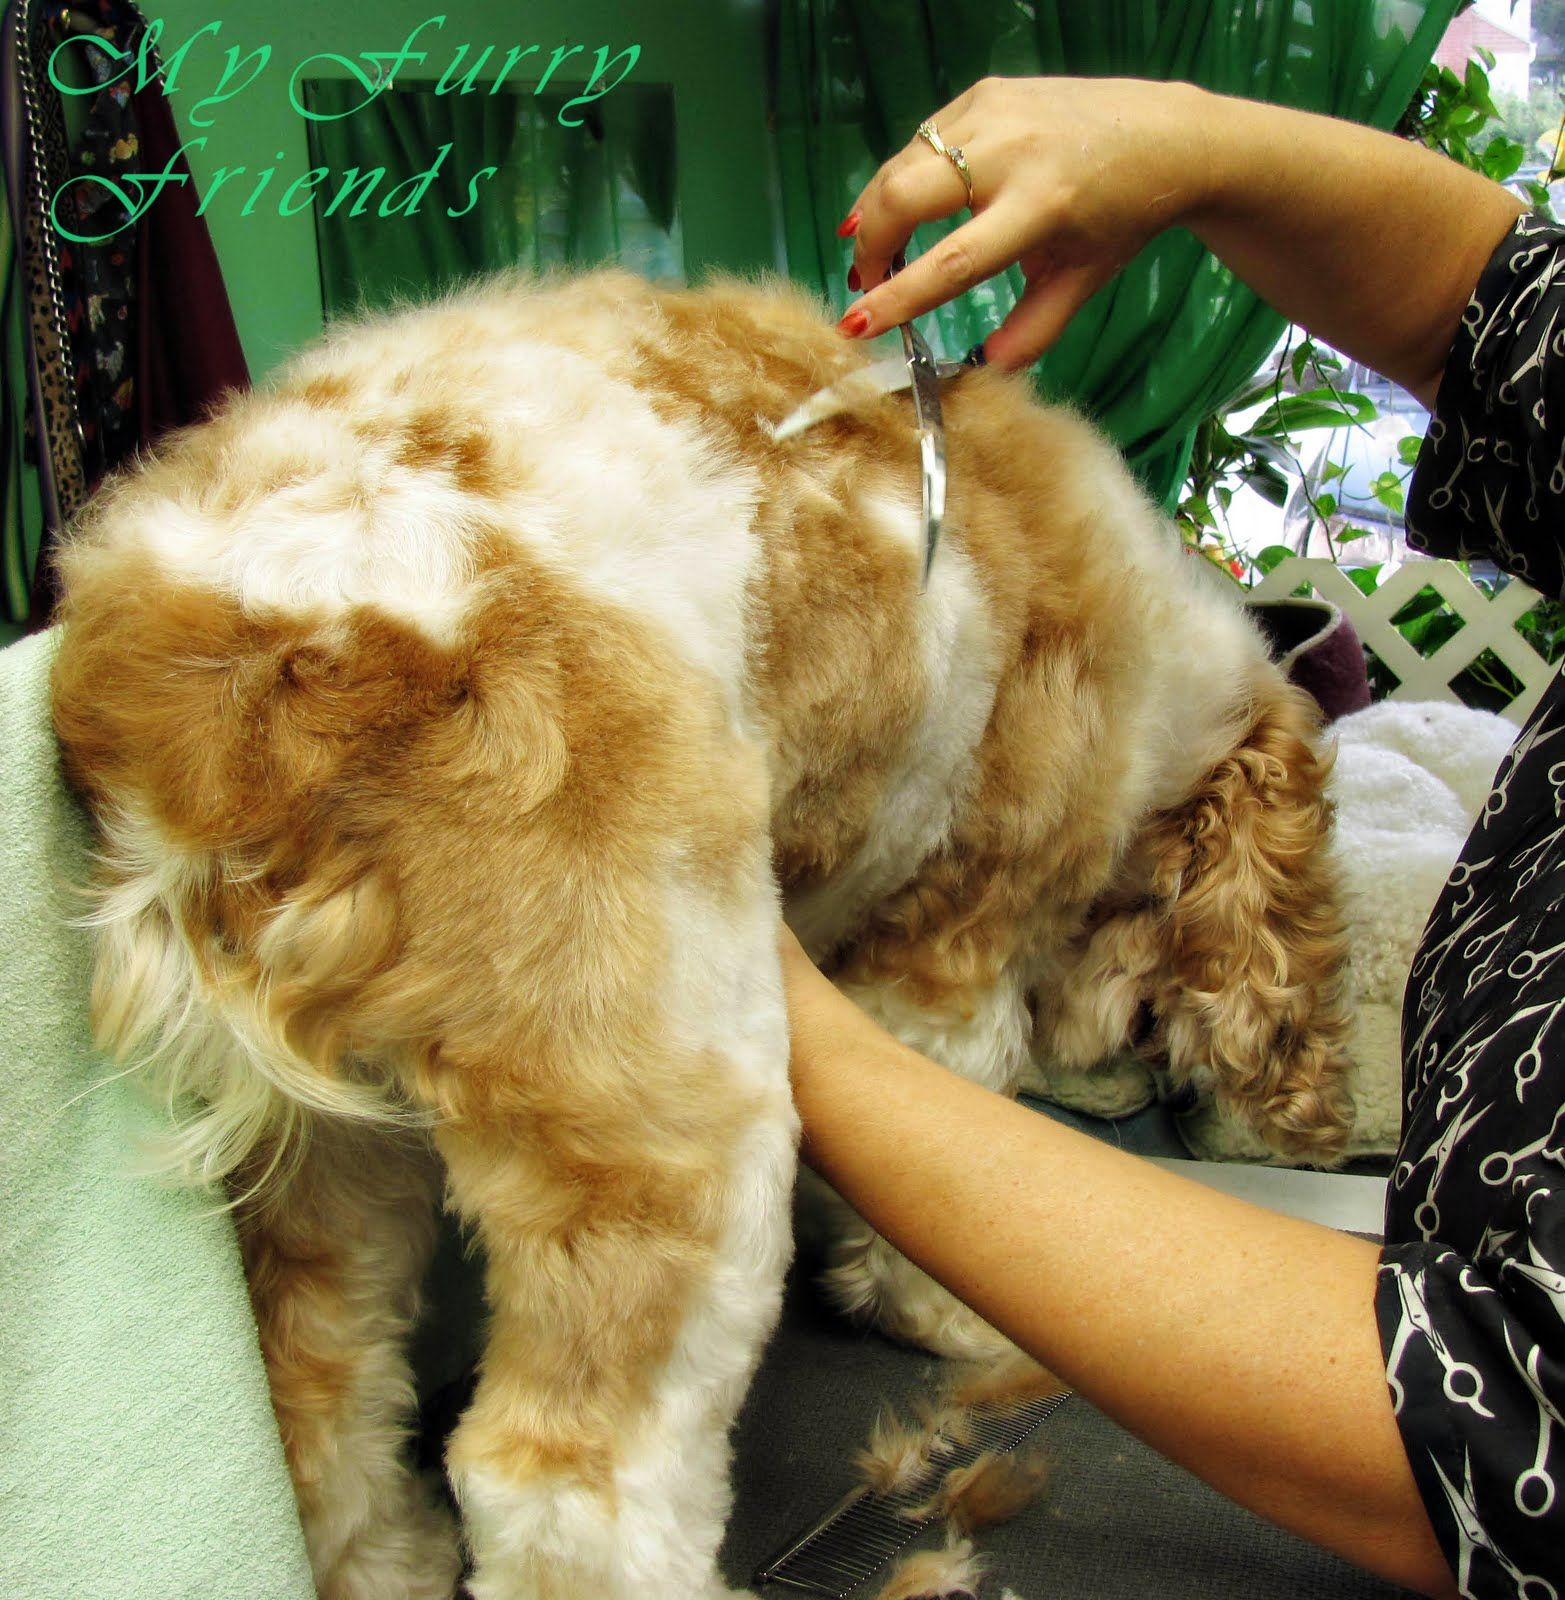 Pet Grooming: The Good, The Bad, & The Furry: Puppy Cut...on a Cocker!